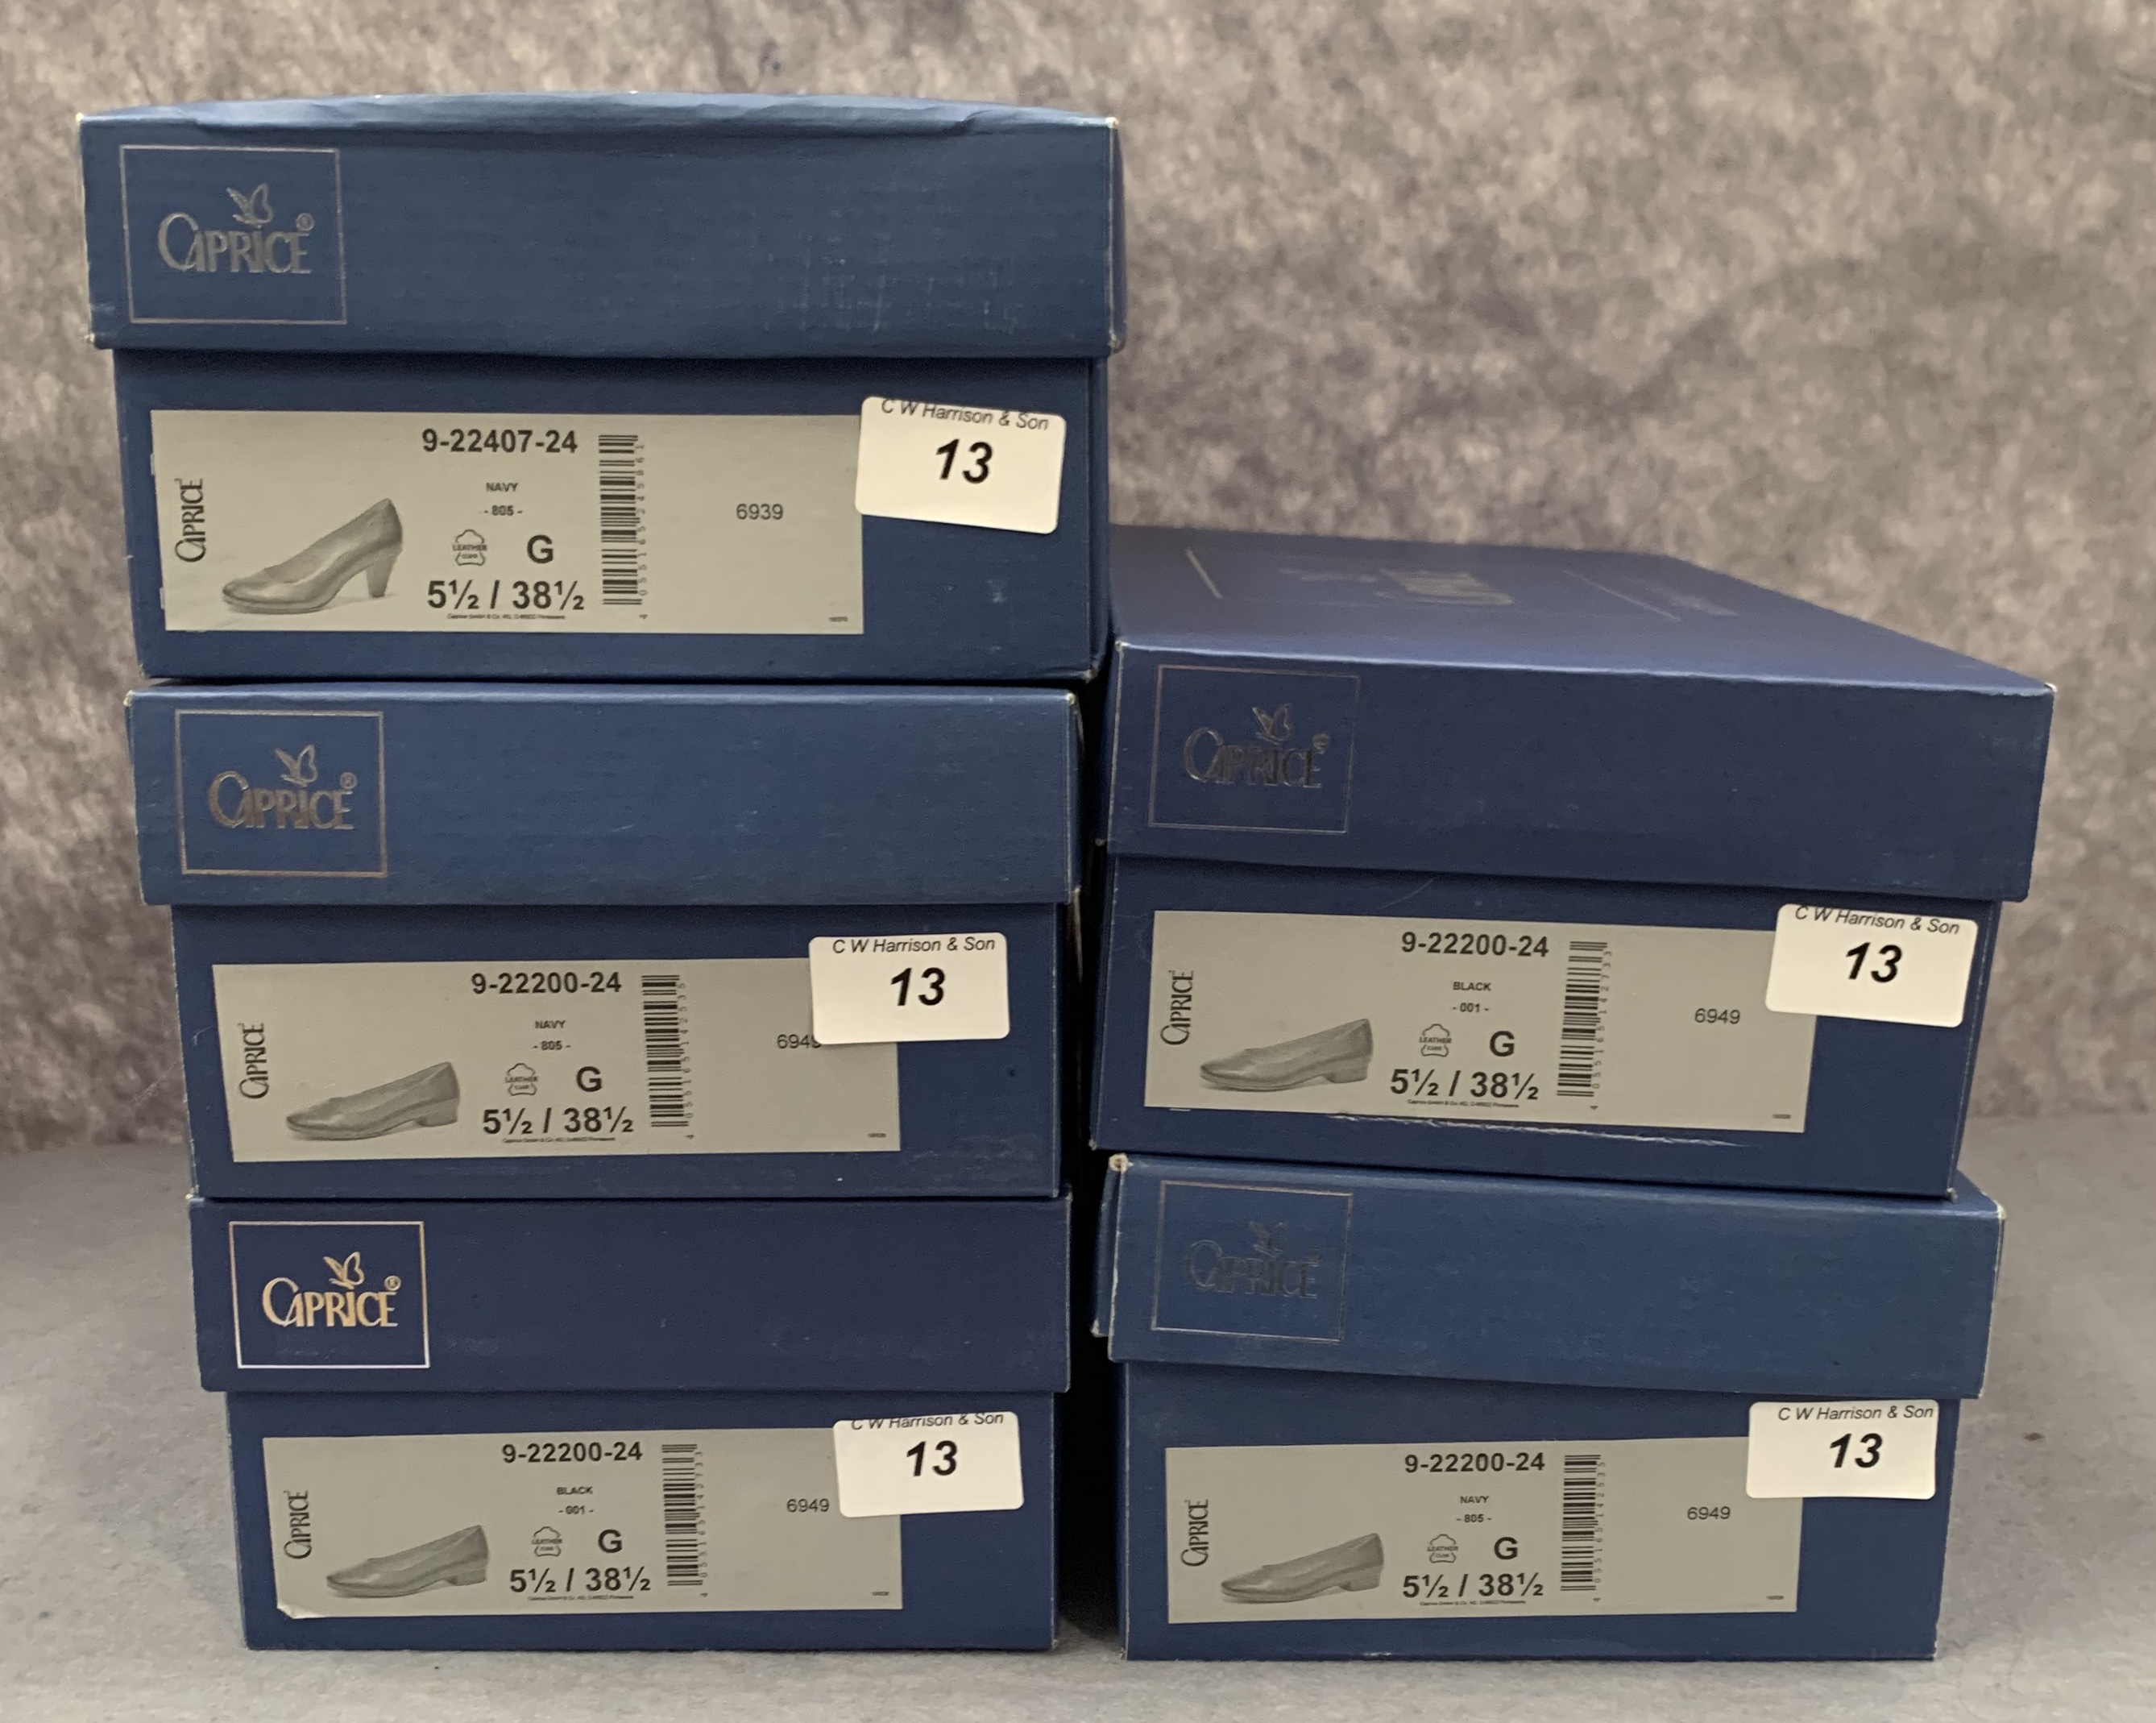 Five pairs of Caprice ladies shoes in black (2) and navy (3), various styles, size 5½, - Image 2 of 2